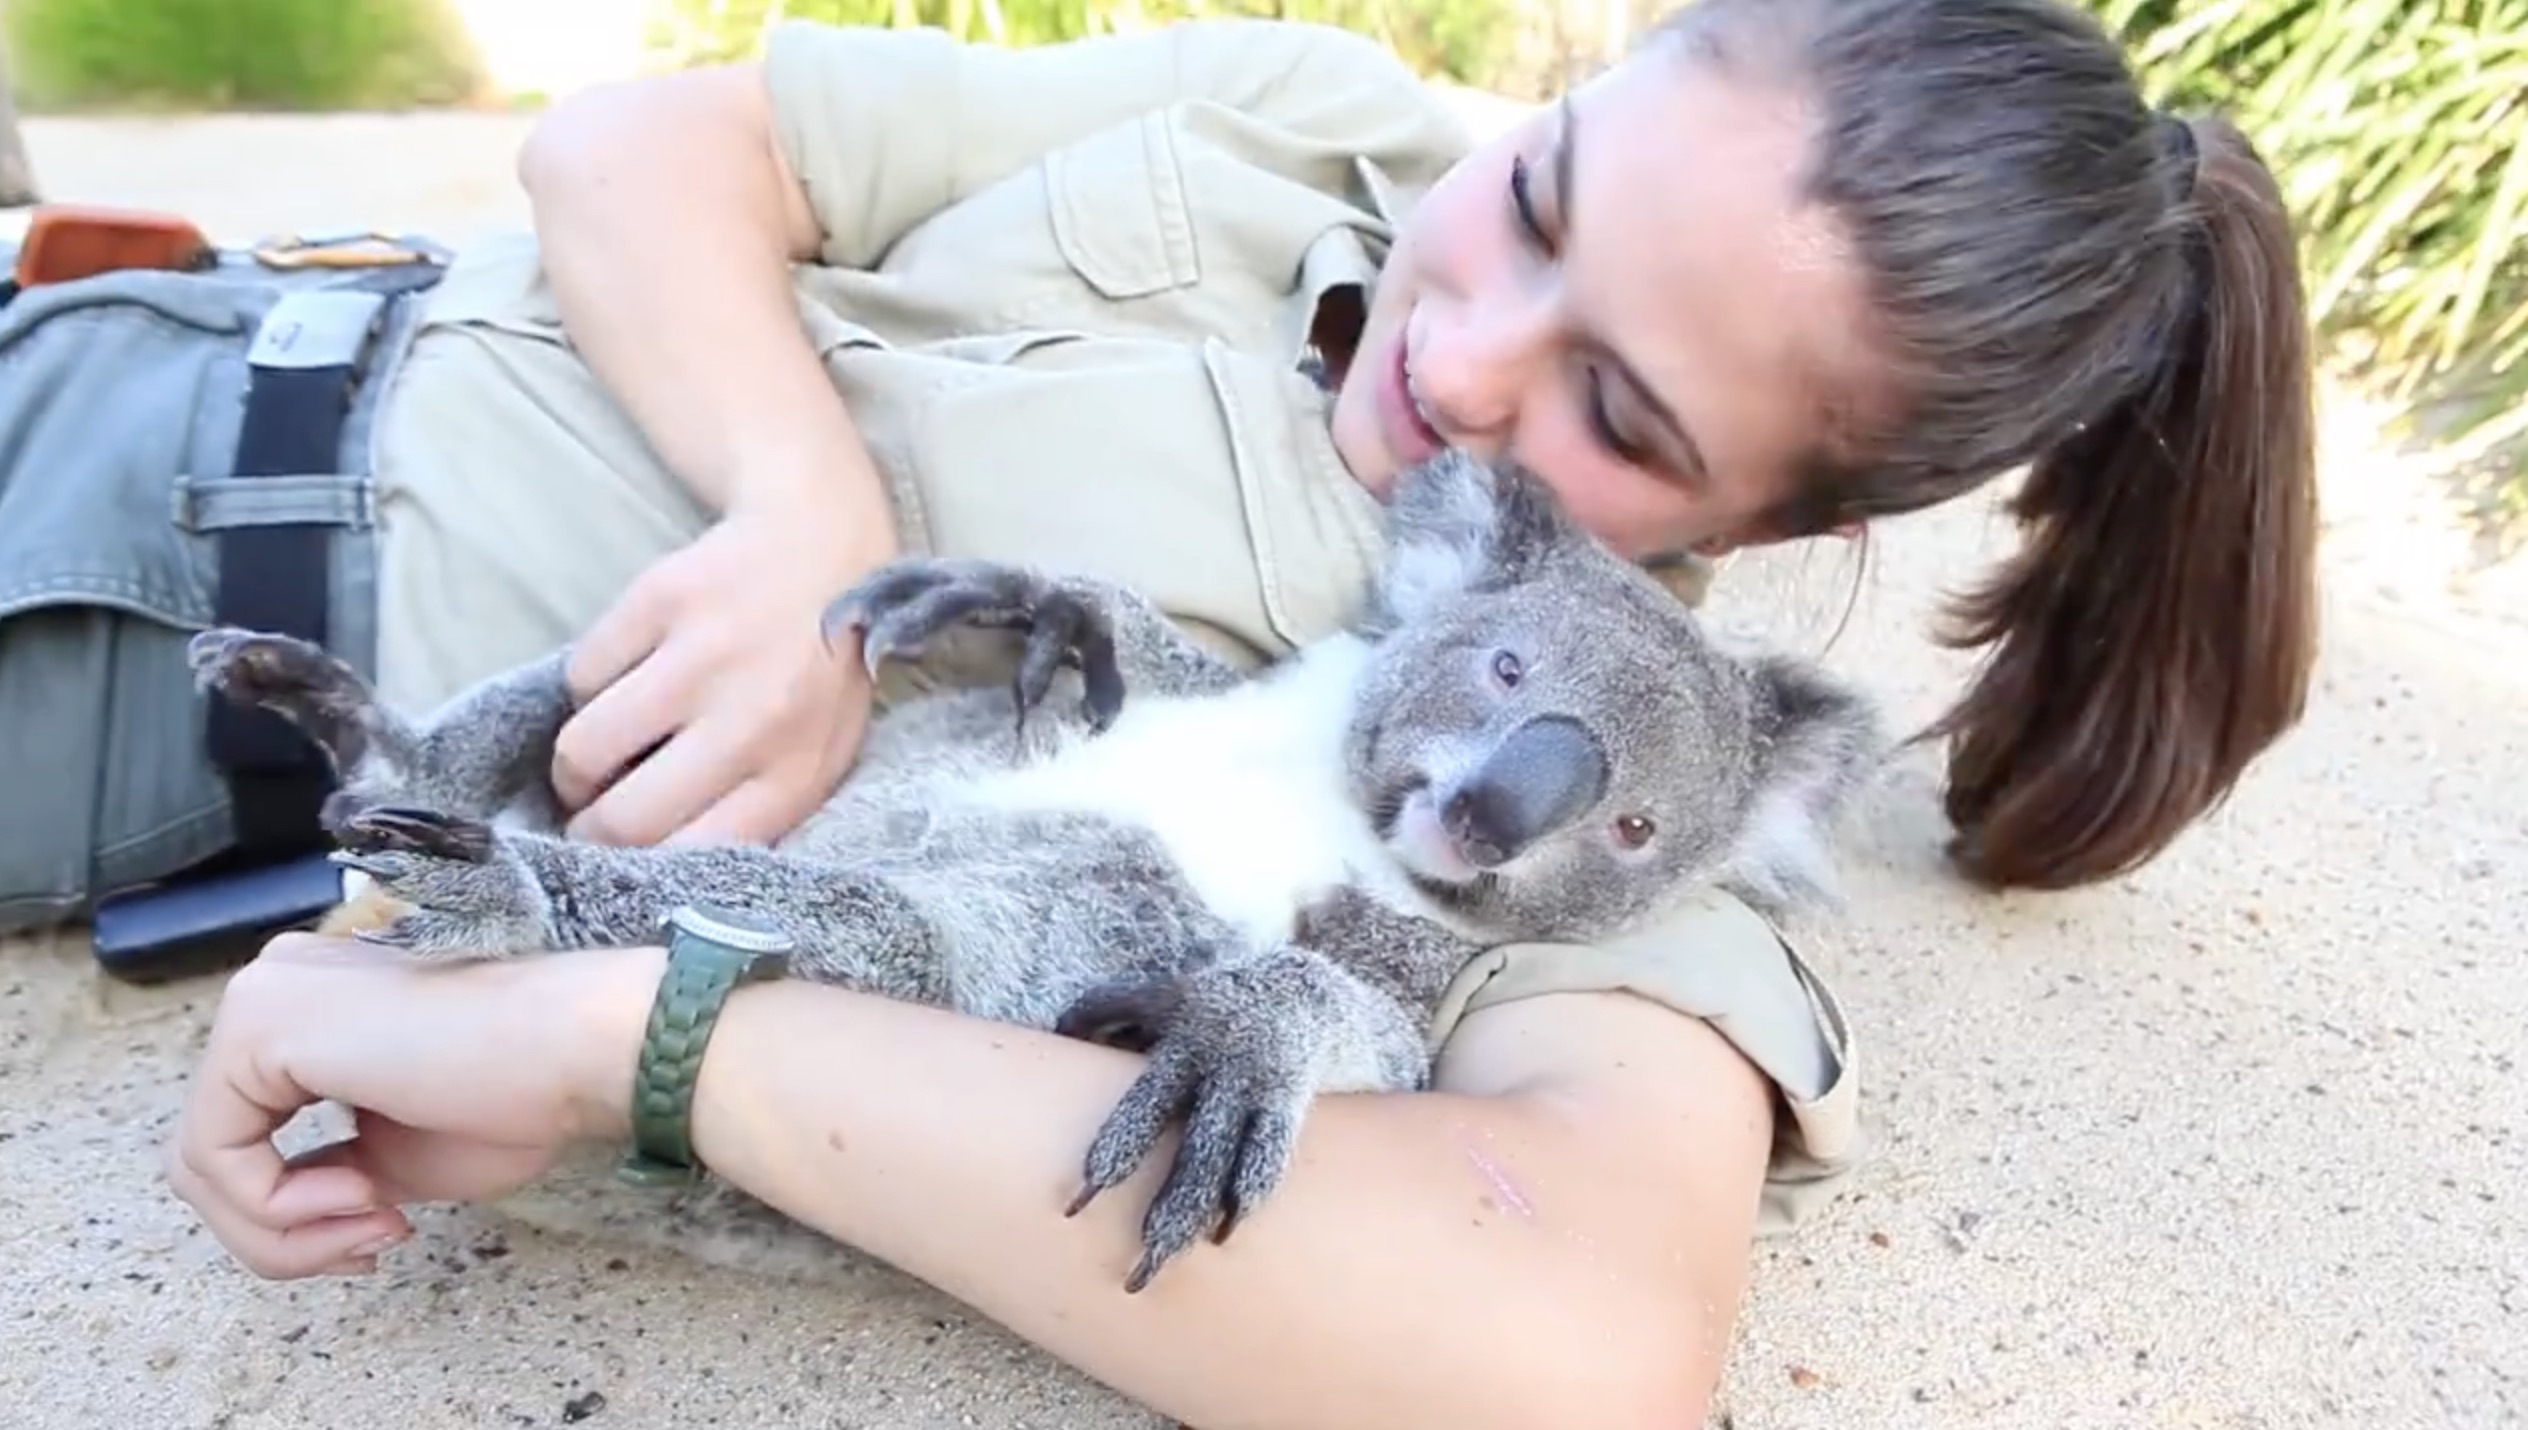 There's a lot we can learn from this koala getting a belly rub